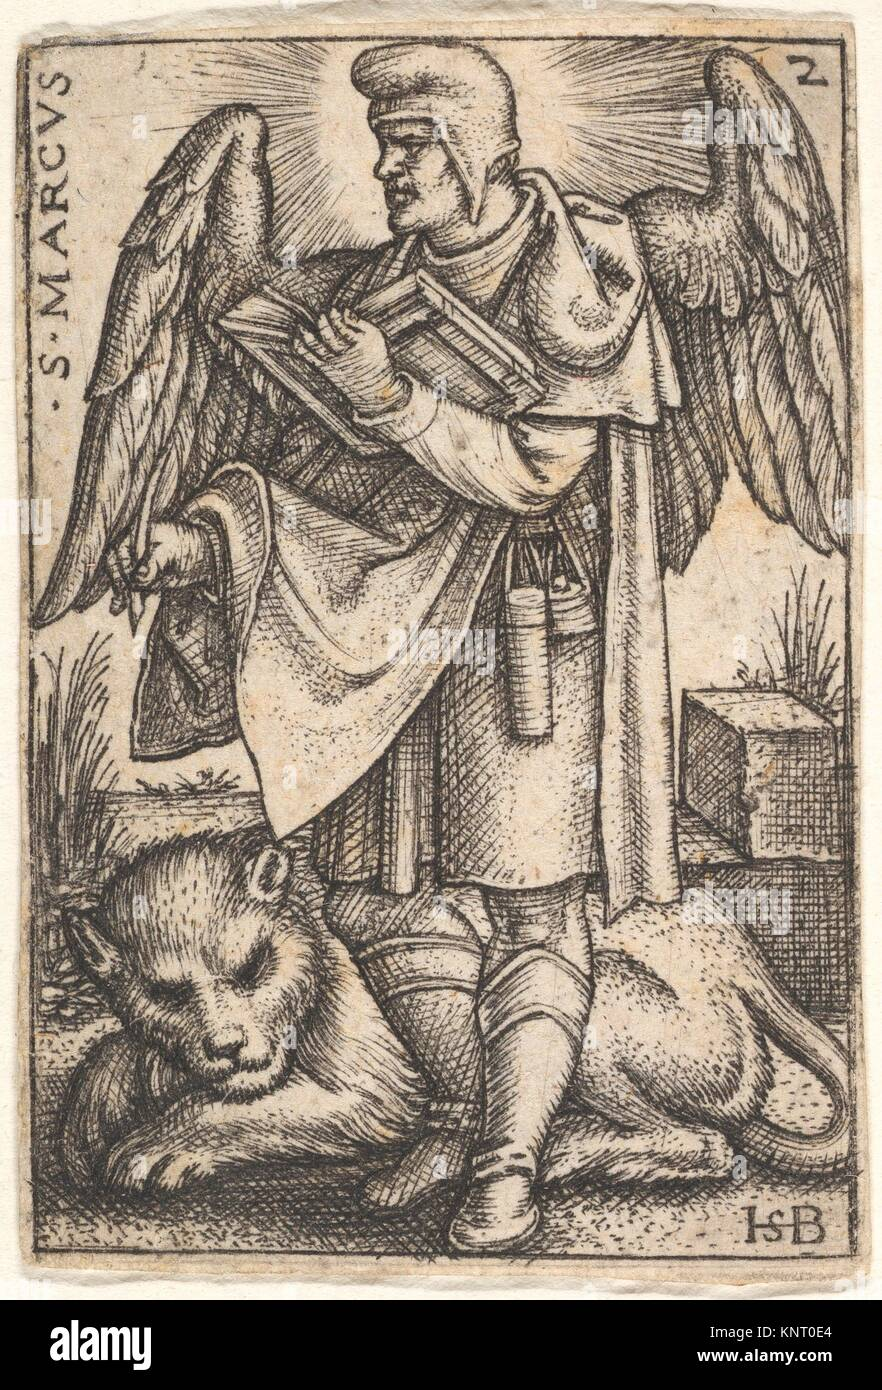 Plate 2: Saint Mark, his head turned in profile to the left, with an open book in his right hand and a lion at his - Stock Image